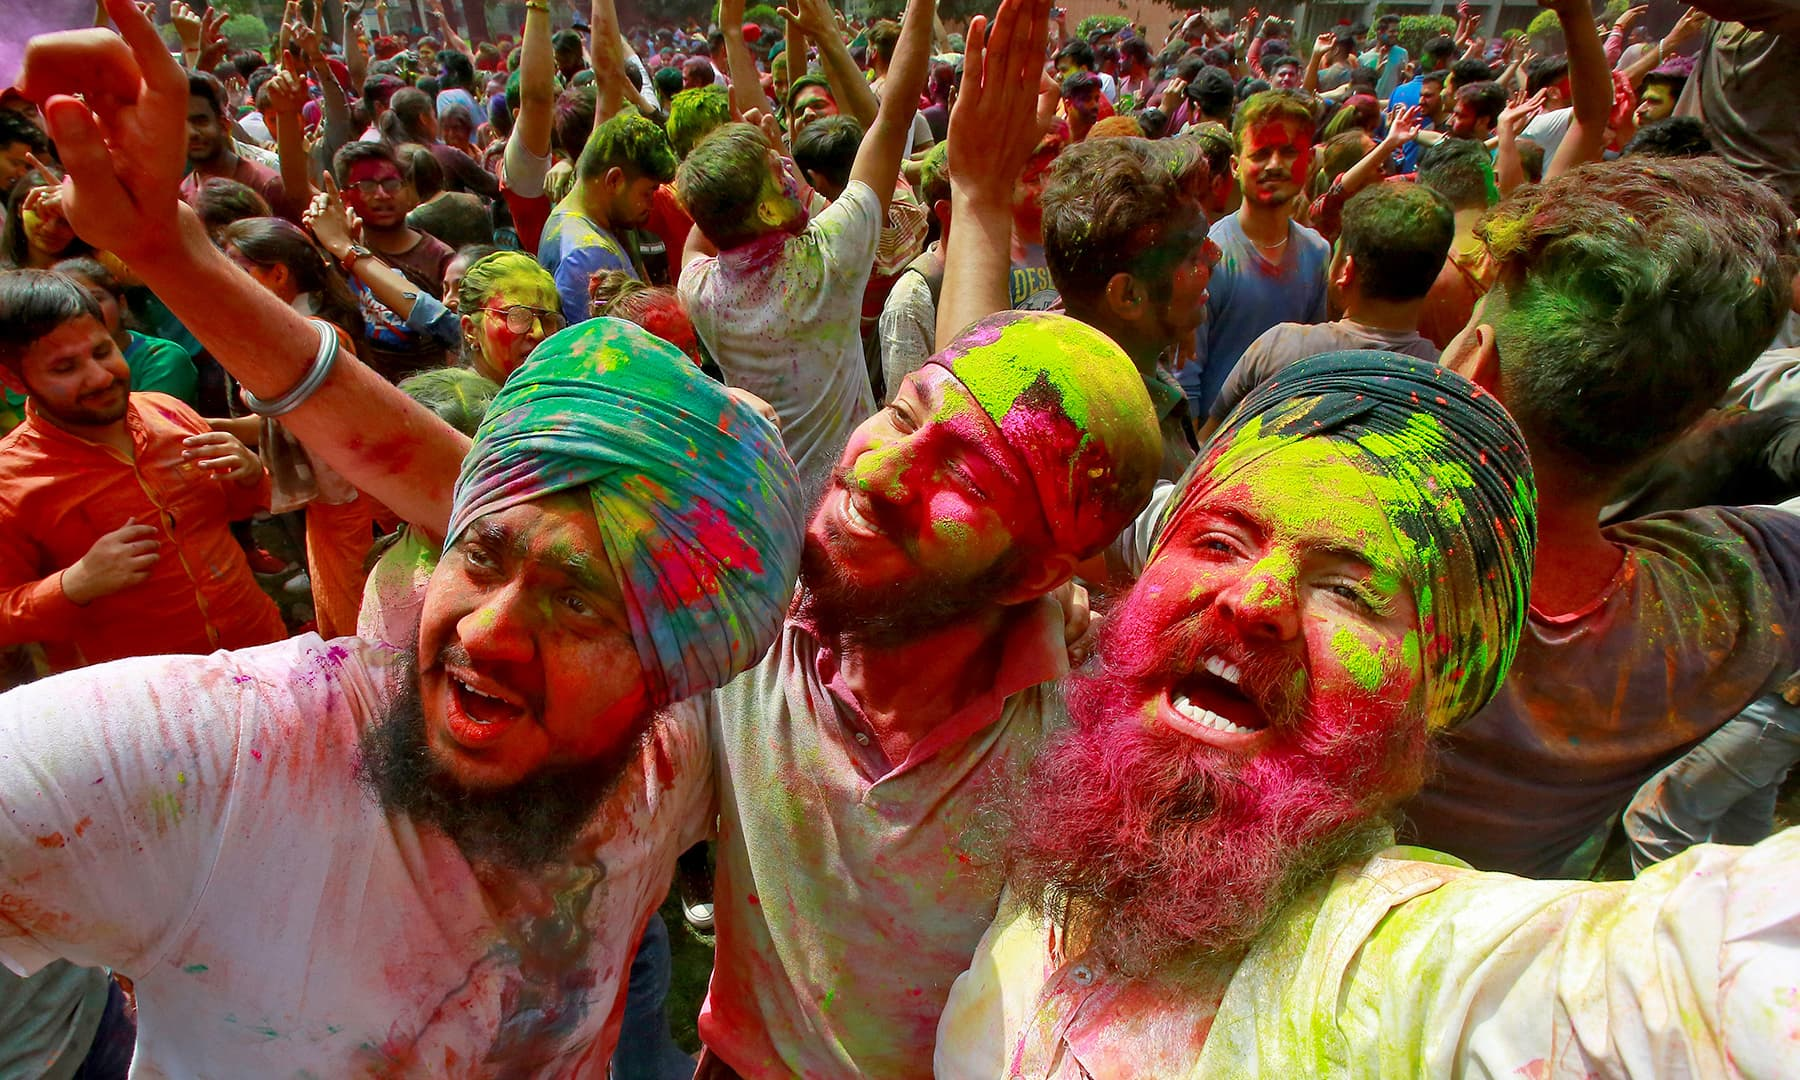 Students with their faces smeared in coloured powder dance as they celebrate Holi at a university campus in Chandigarh, India, March 20, 2019. — Reuters